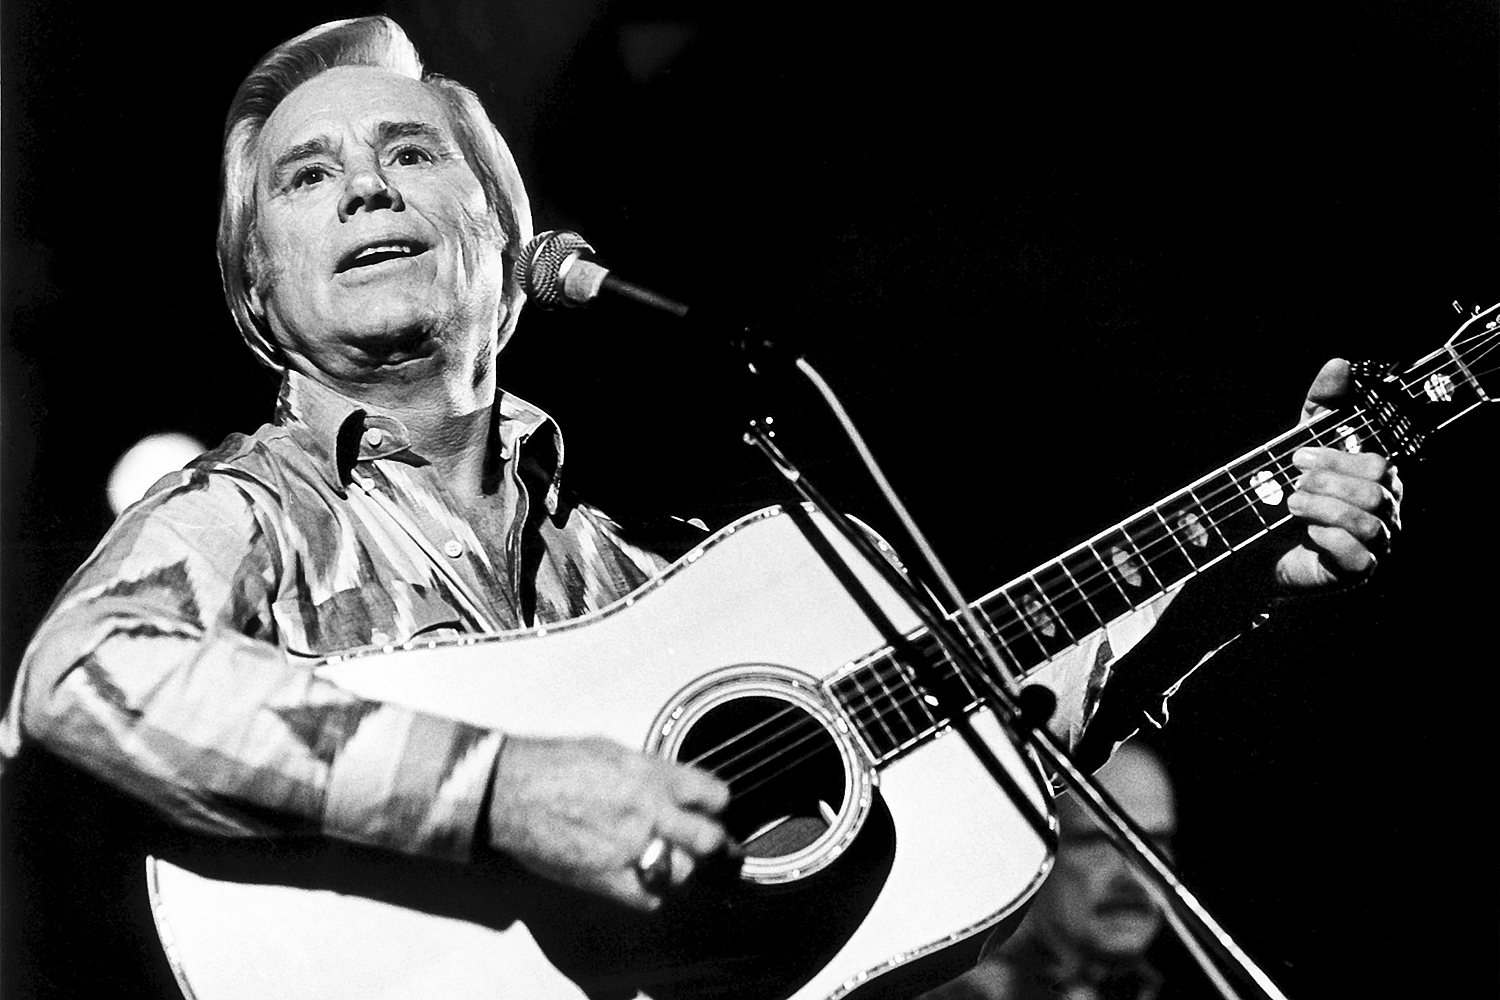 100 Greatest Country Artists Of All Time Singers Ranked Rolling Stone They Peaked On The Talent Show Circuit In 1992 With A Performance American Music Star George Jones 1931 2013 Performs At Tramps New